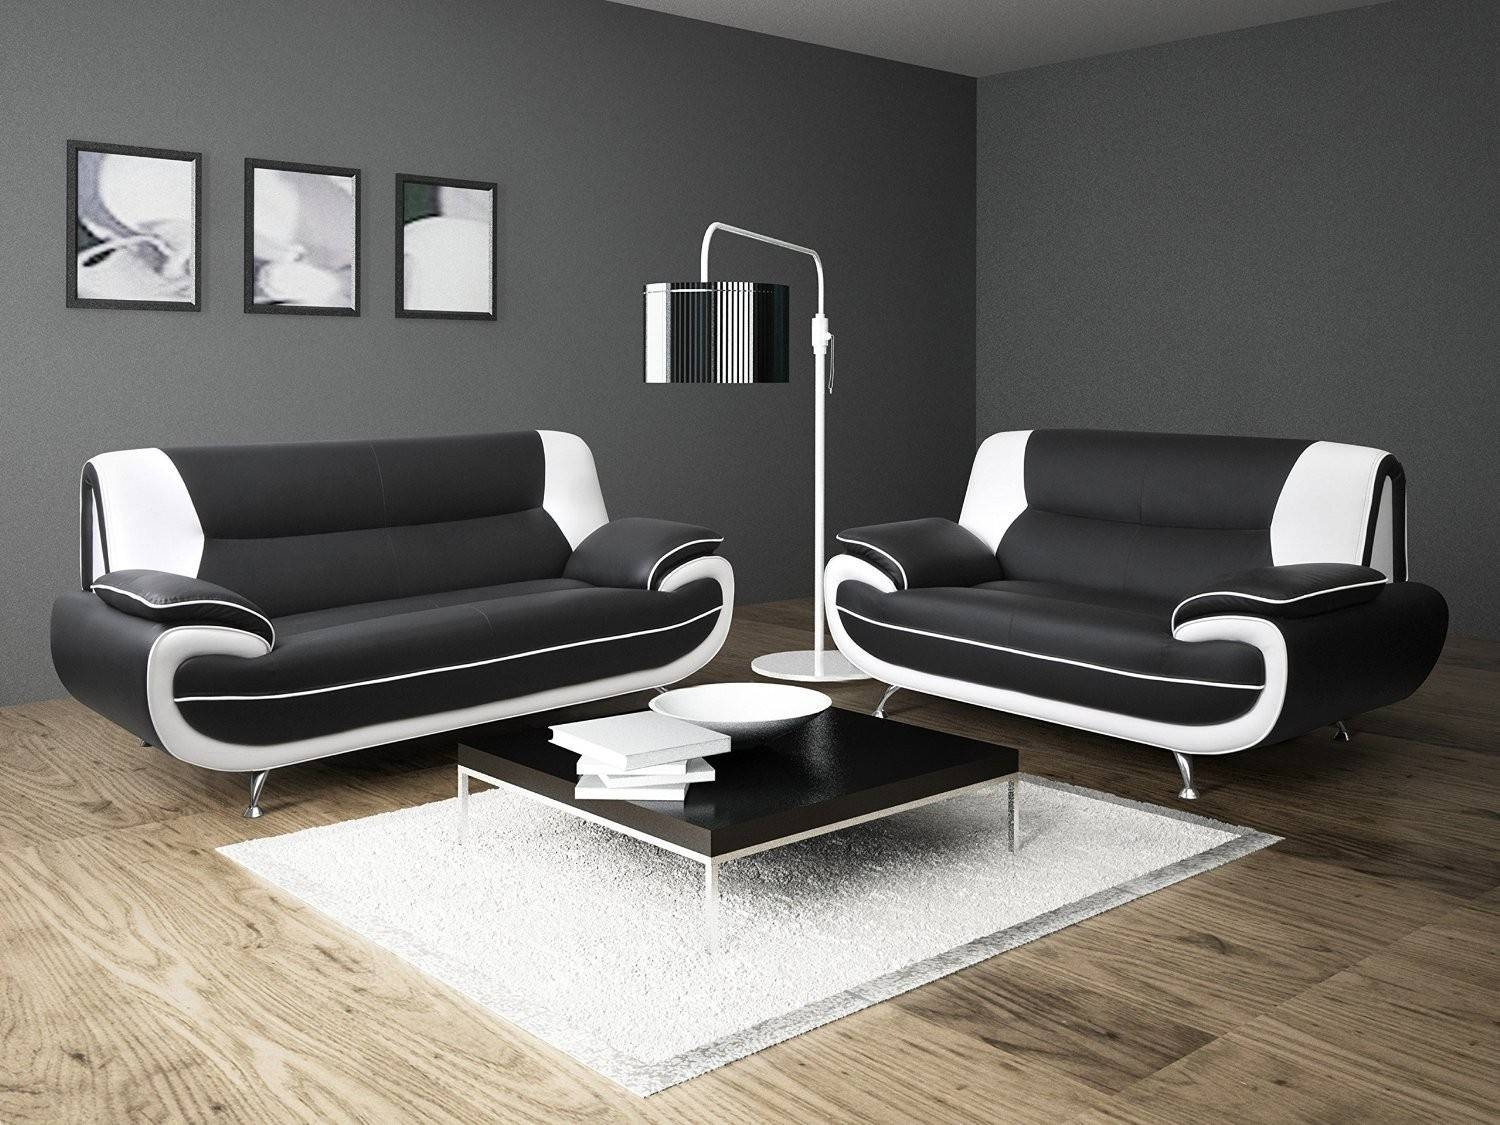 Black And White Leather Sofa Set 24 With Black And White Leather throughout Black and White Leather Sofas (Image 4 of 15)